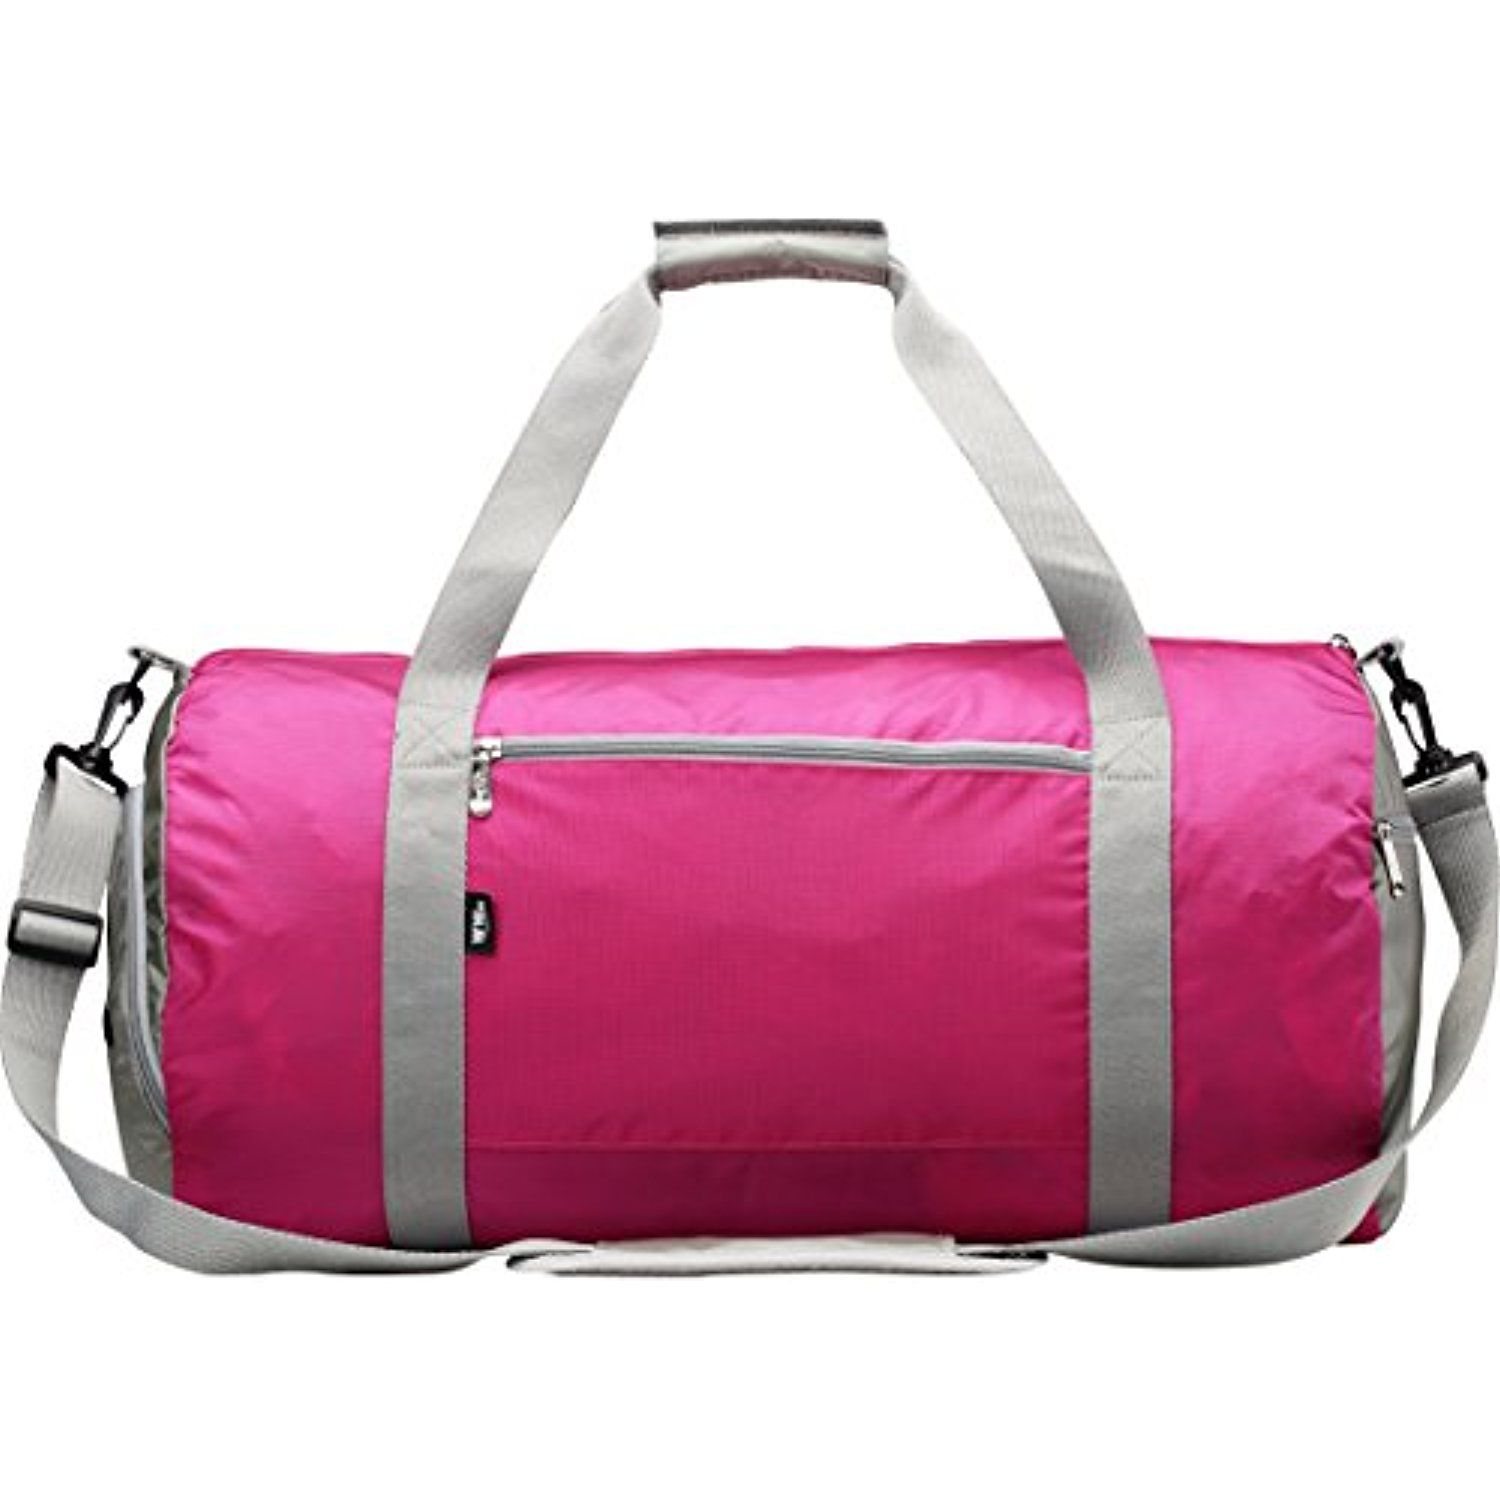 76313de1cfe9 RISUNNY Barrel Fitness Gym Bag Small Travel Sports Bags for Men and Women   Accessories